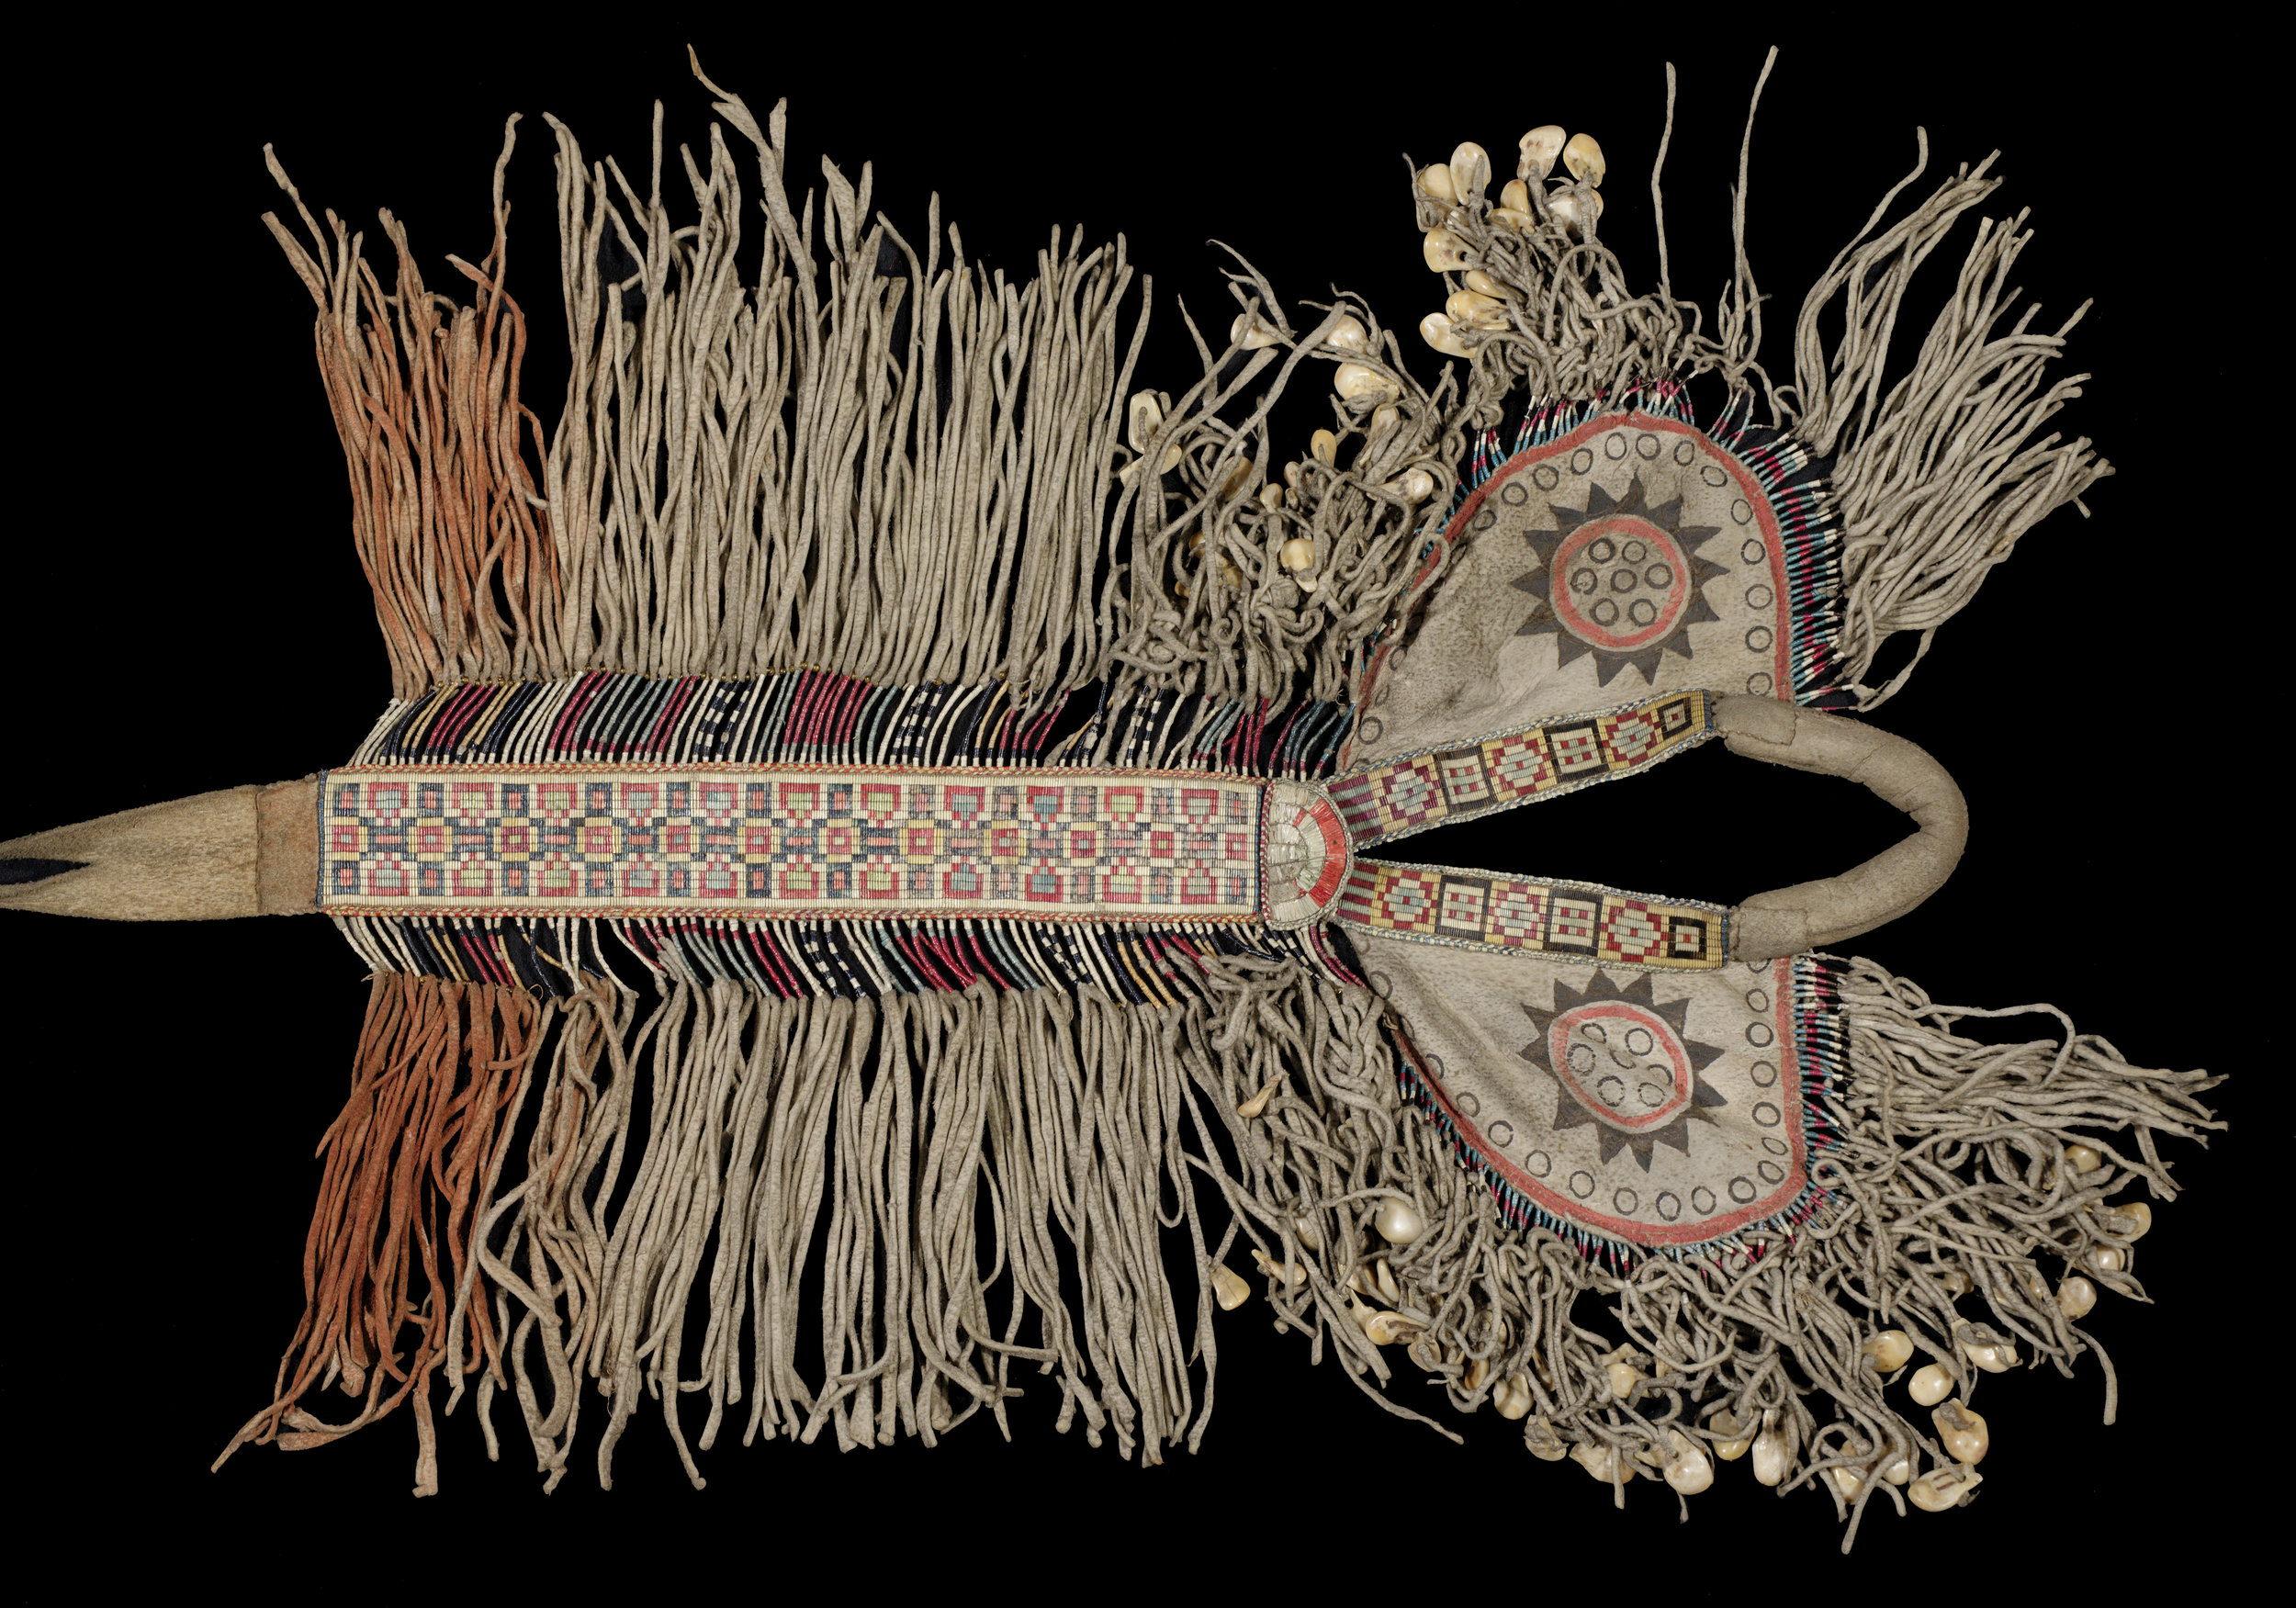 Padded saddle, Plains, North America. Pitt Rivers Museum, cat. #1884.51.14. Image courtesy of the Pitt Rivers Museum.